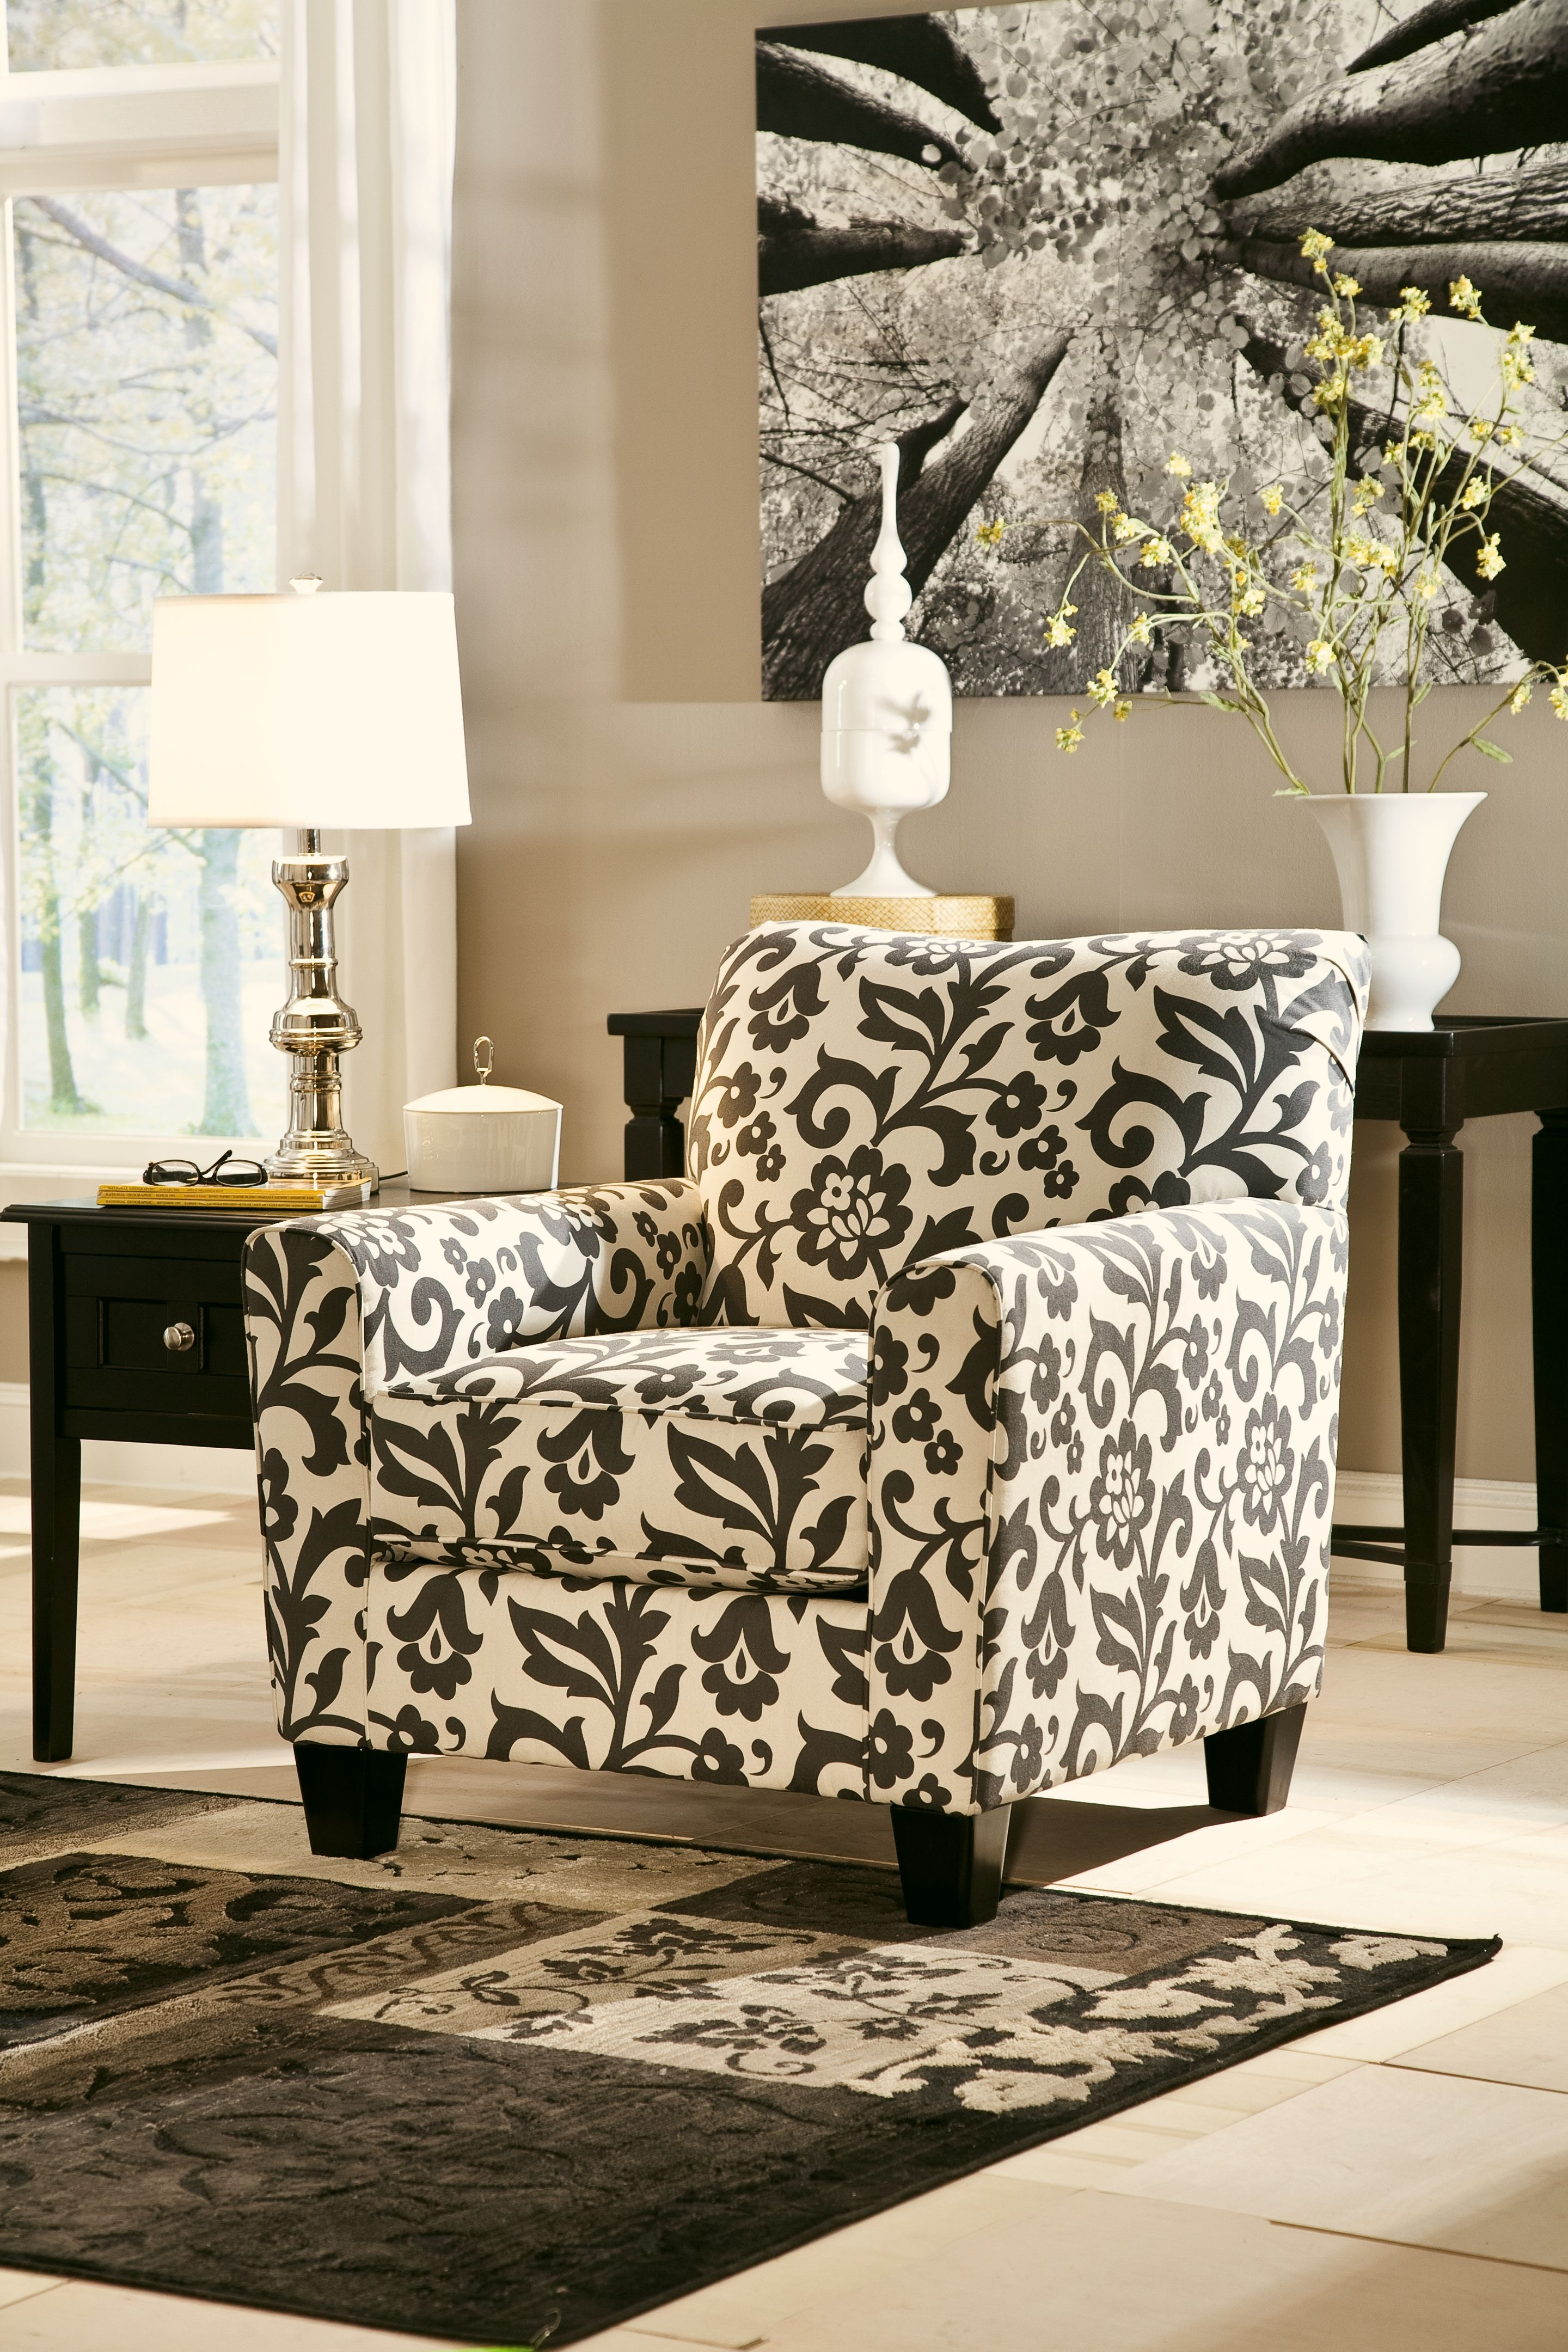 jive chenille living room furniture collection wall art decor ideas chairs evans galleries chico yuba city accent chair